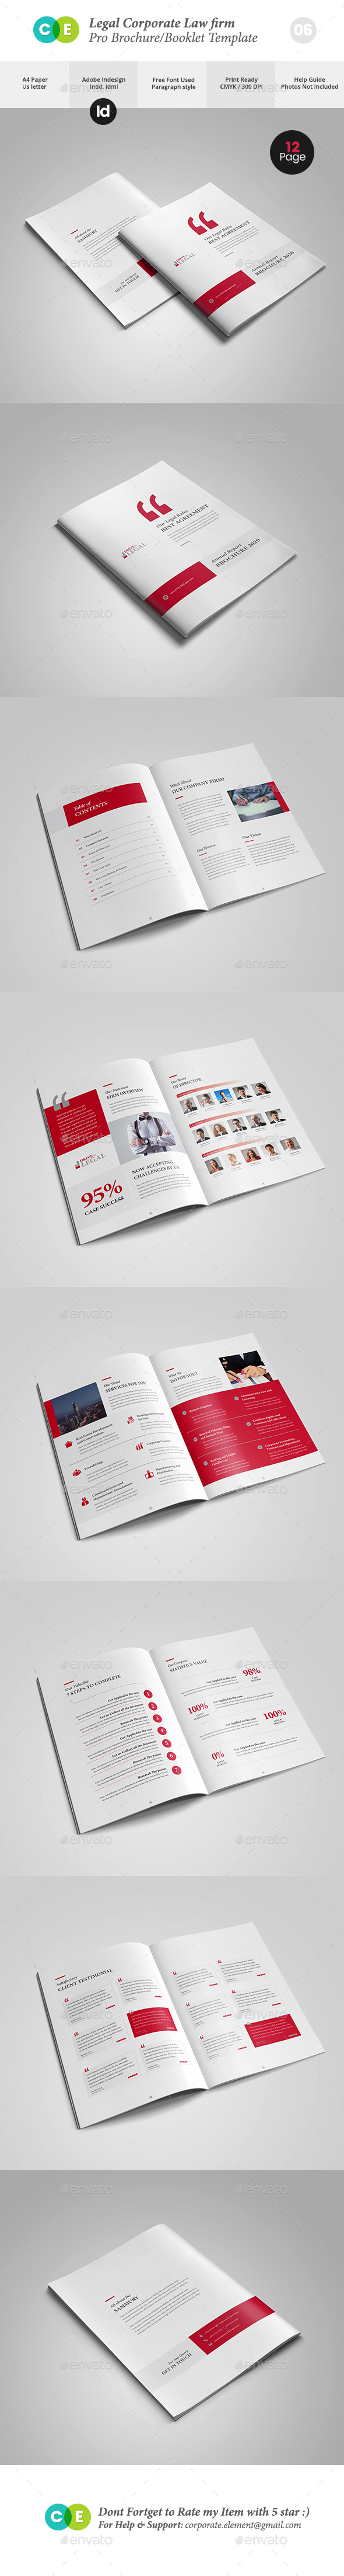 Legal Corporate Law Firm Business Brochure V06 - Brochures Print Templates